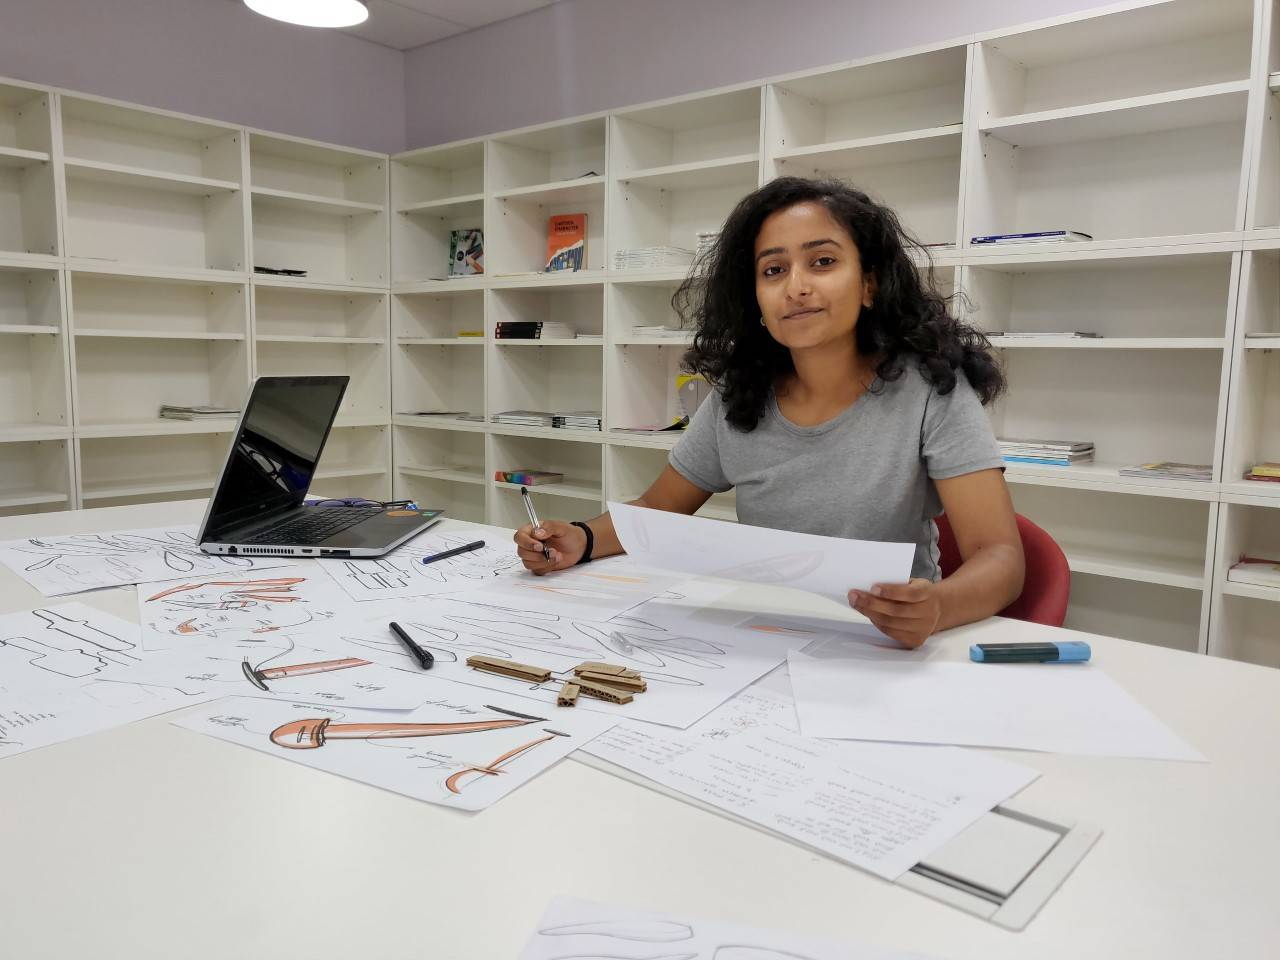 Here's a pen for Parkinson's disease patient designed by NID student that also won £2,000 James Dyson India Award